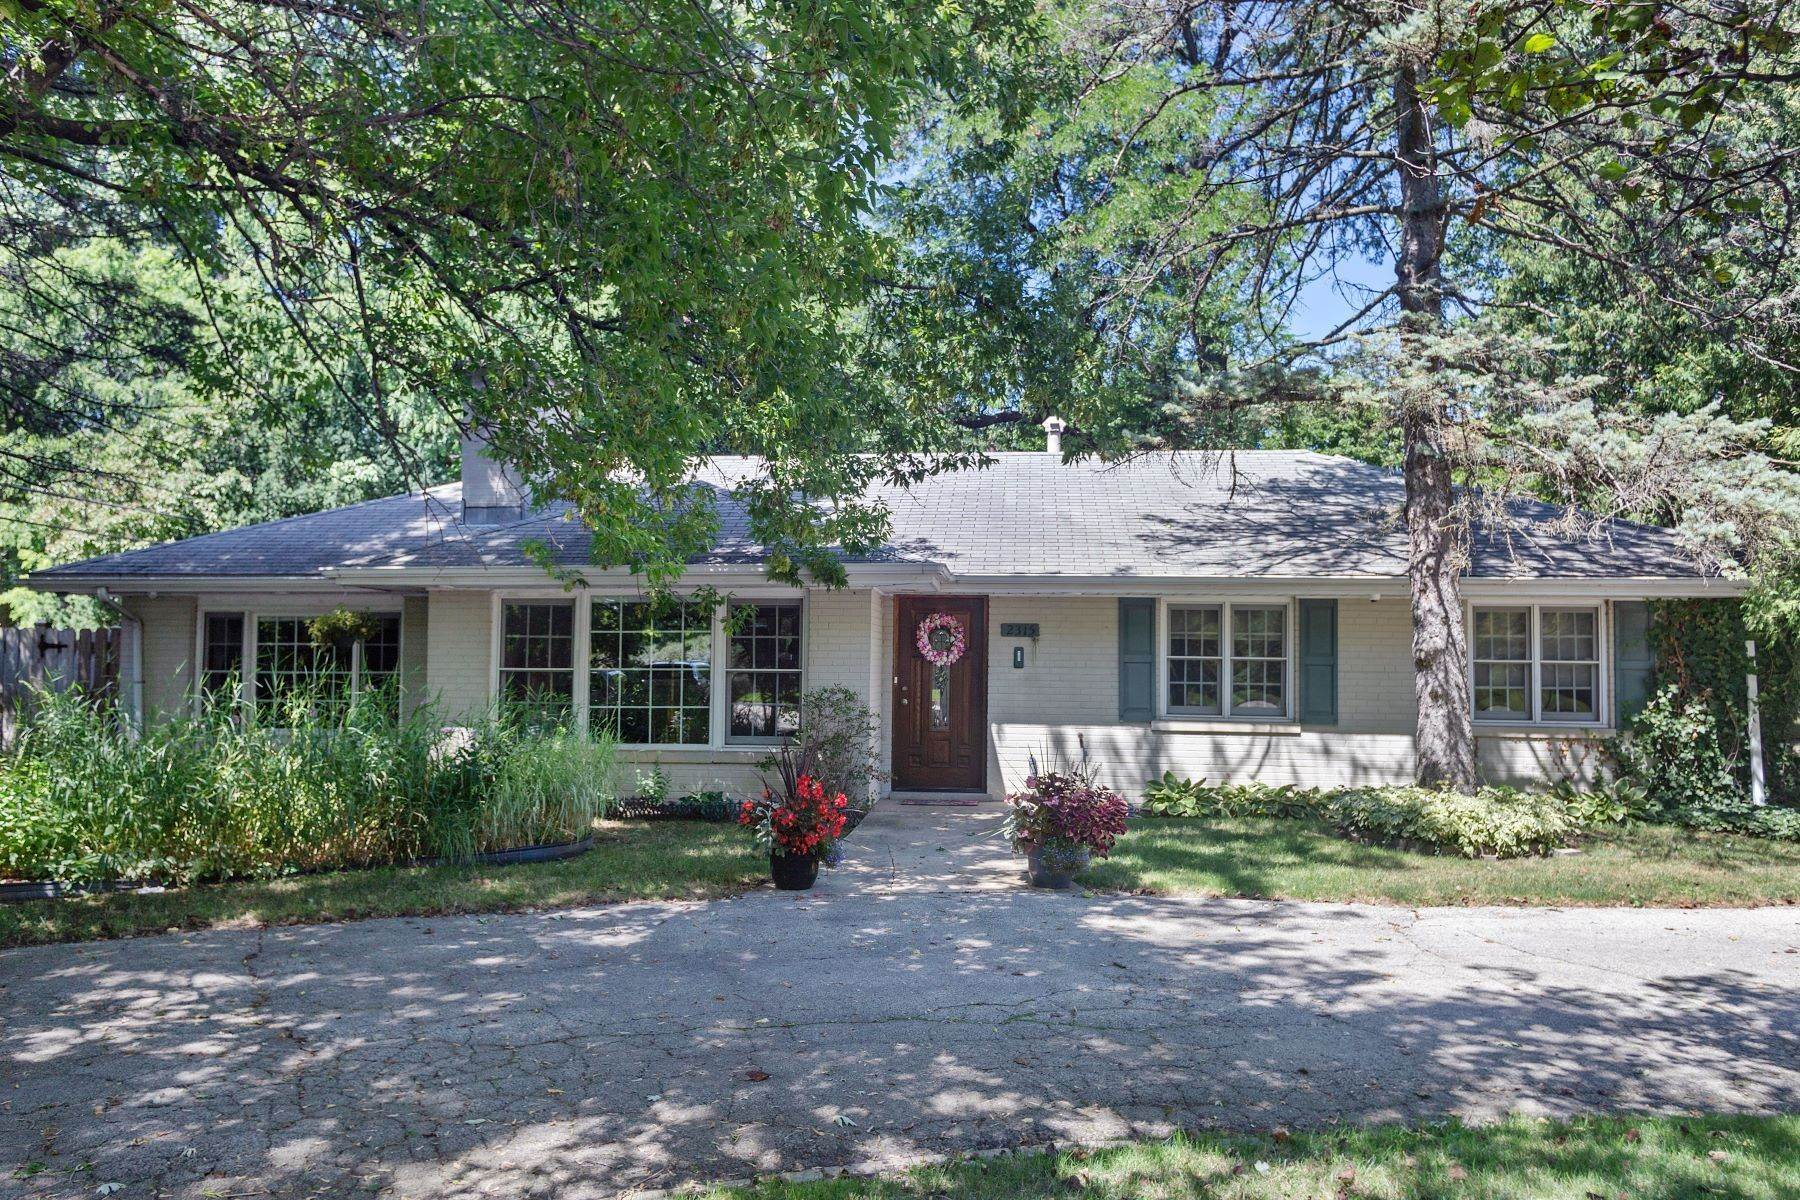 Single Family Homes for Sale at Charming and Unique Evanston Gem 2315 Mccormick Boulevard Evanston, Illinois 60201 United States